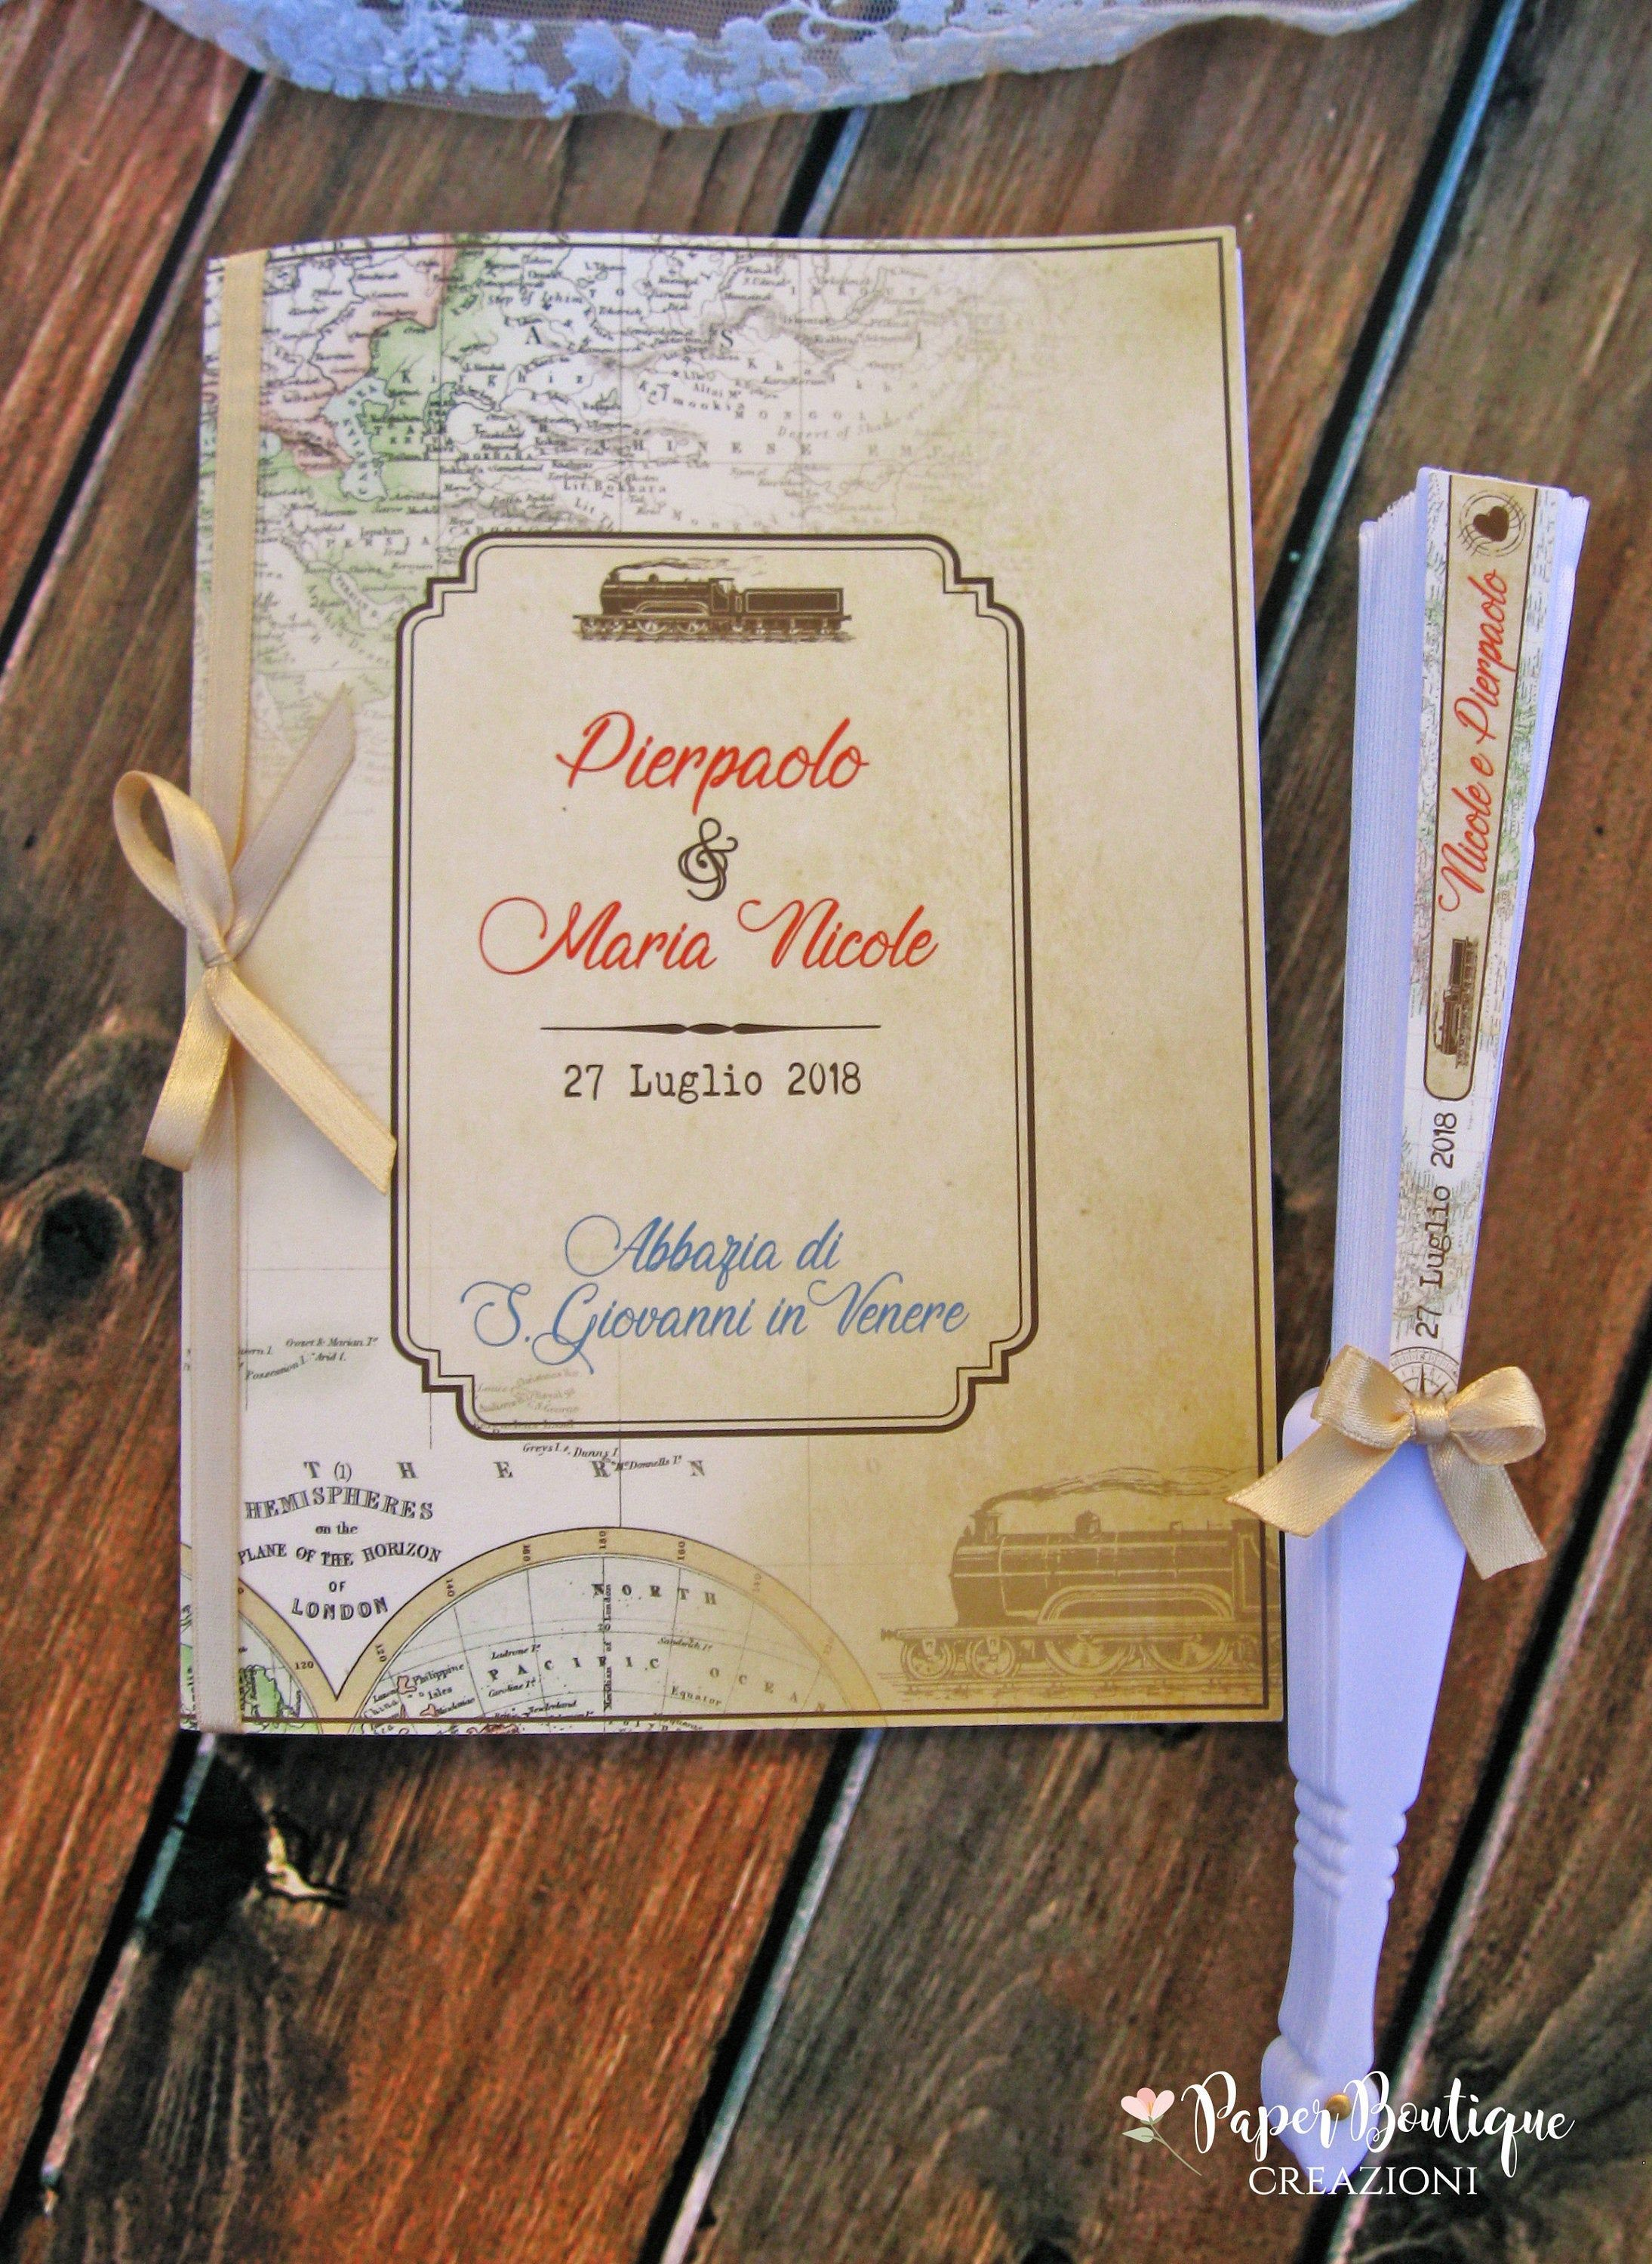 Booklet Mass Collection Vintage Travel Personalized Travel Marriage Mass Booklet In 2020 Vintage Travel Themes Vintage Travel Personalized Travel